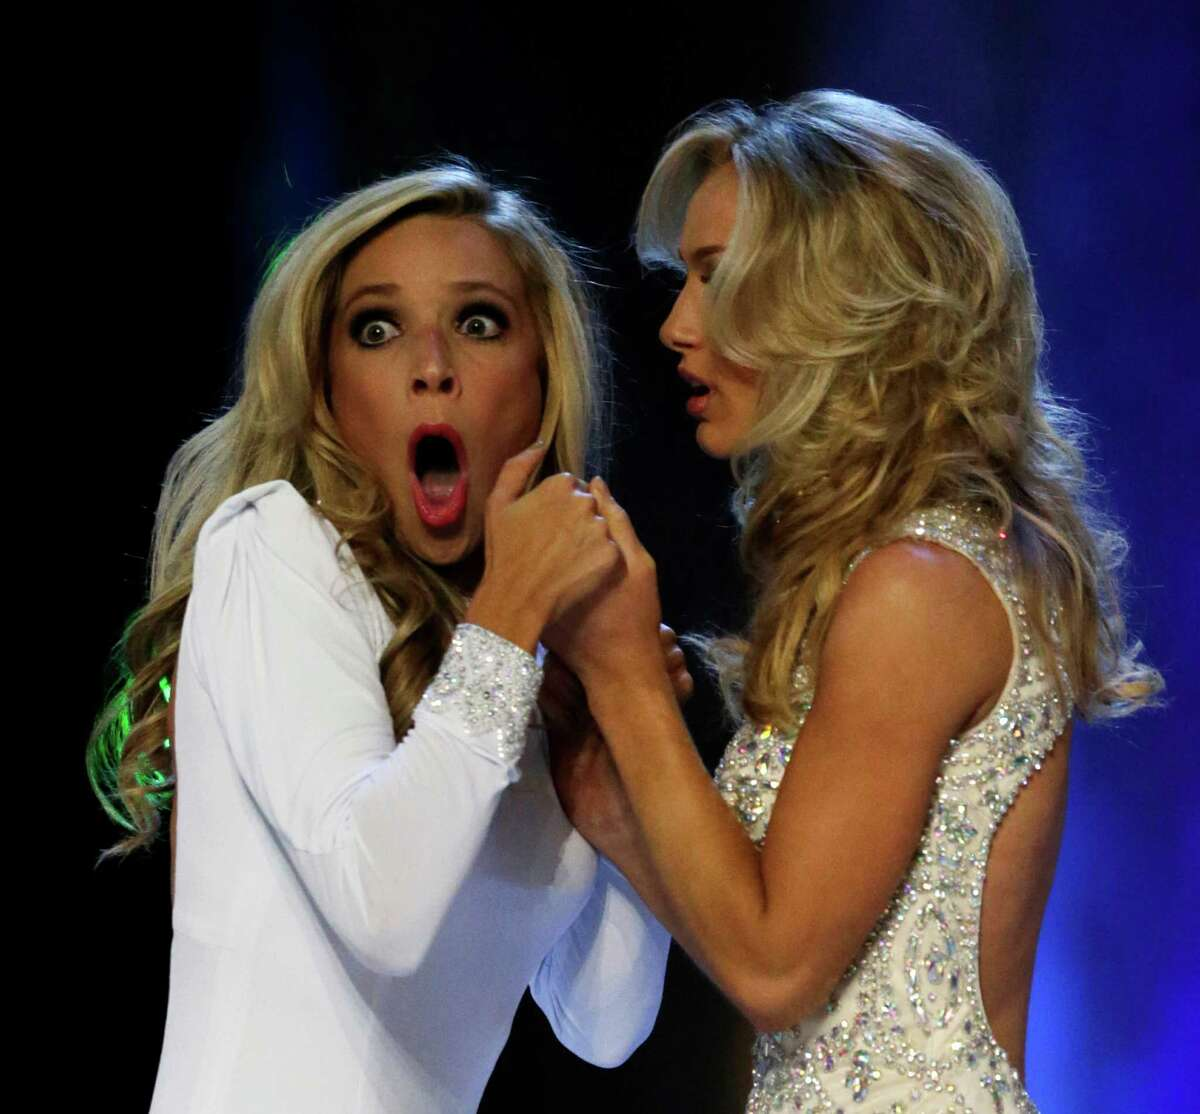 Miss New York Kira Kazantsev, left, gasps after she was named Miss America 2015 as she holds hands with Miss Virginia Courtney Paige Garrett during the Miss America 2015 pageant, Sunday, Sept. 14, 2014, in Atlantic City, N.J.